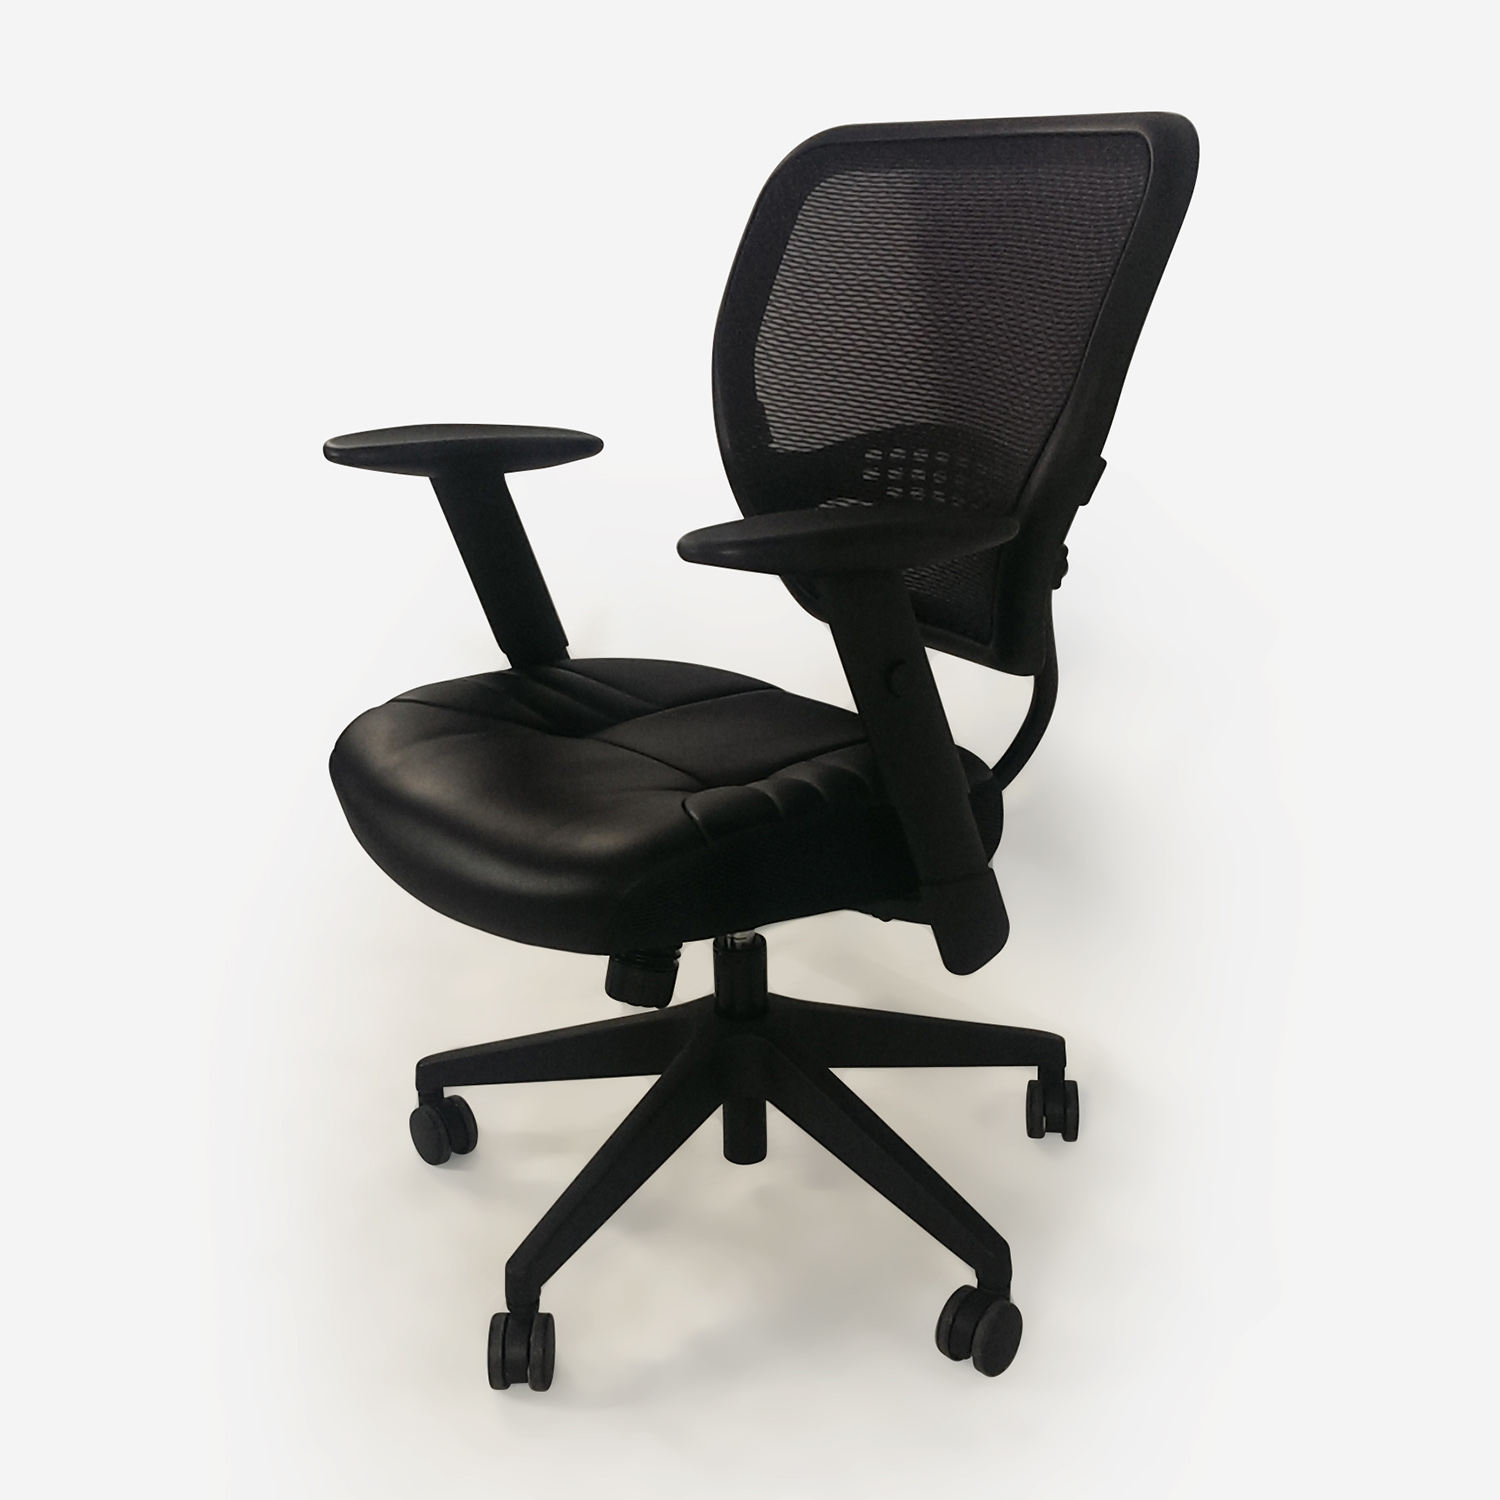 67 off black leather office chair chairs. Black Bedroom Furniture Sets. Home Design Ideas